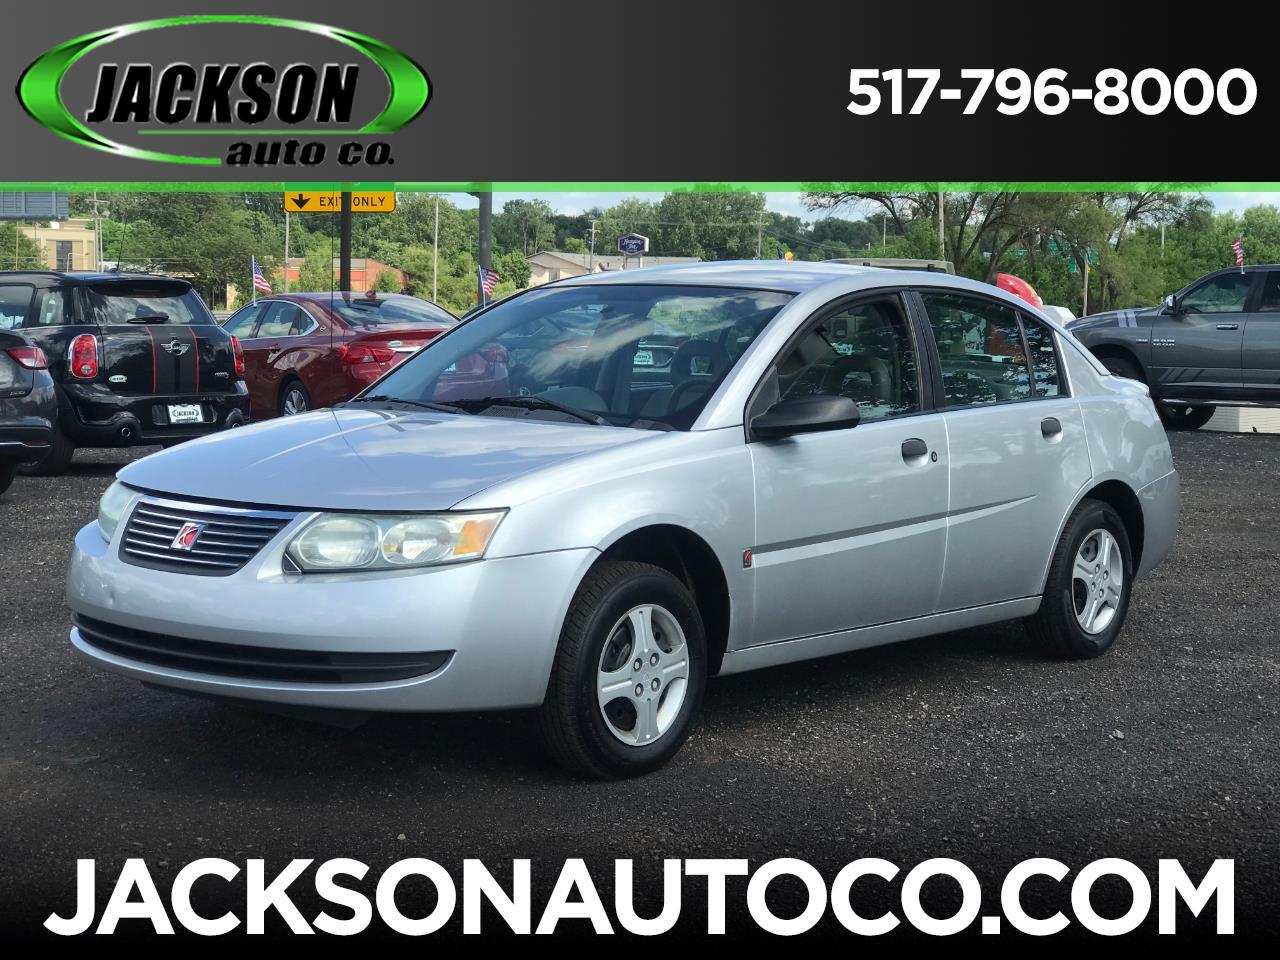 Saturn ION ION 1 4dr Sdn Auto 2005